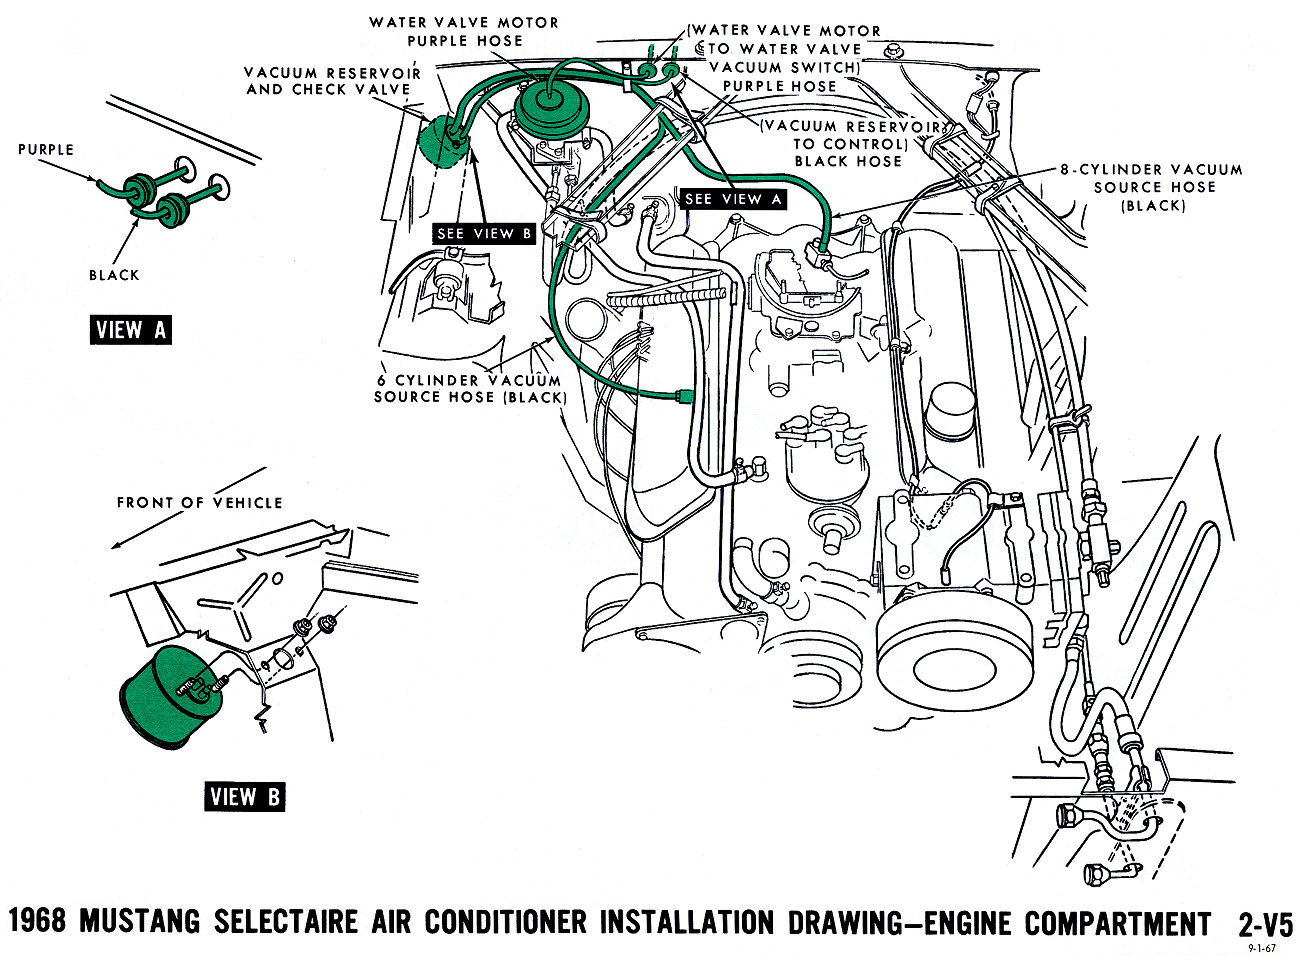 1966 Ford Mustang Wiring Diagram And 2007 additionally Ccrp 0908 Gm Steering Column Repair likewise 53976 in addition 1998 Ford F150 Wiring Diagram besides HW2811. on 1968 ford mustang wiring diagram